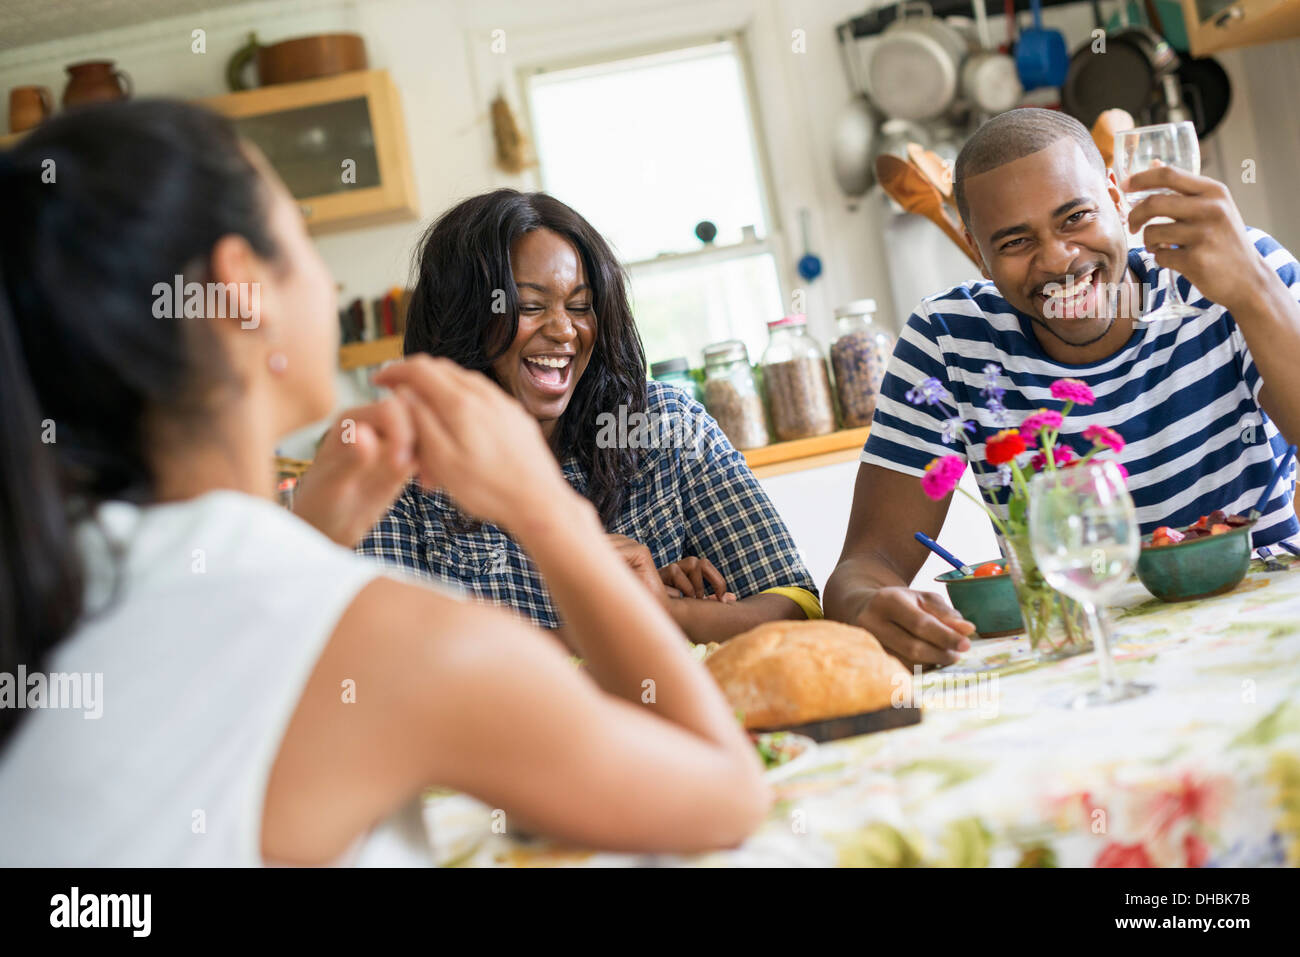 A group of women and men at a meal in a farmhouse kitchen. - Stock Image